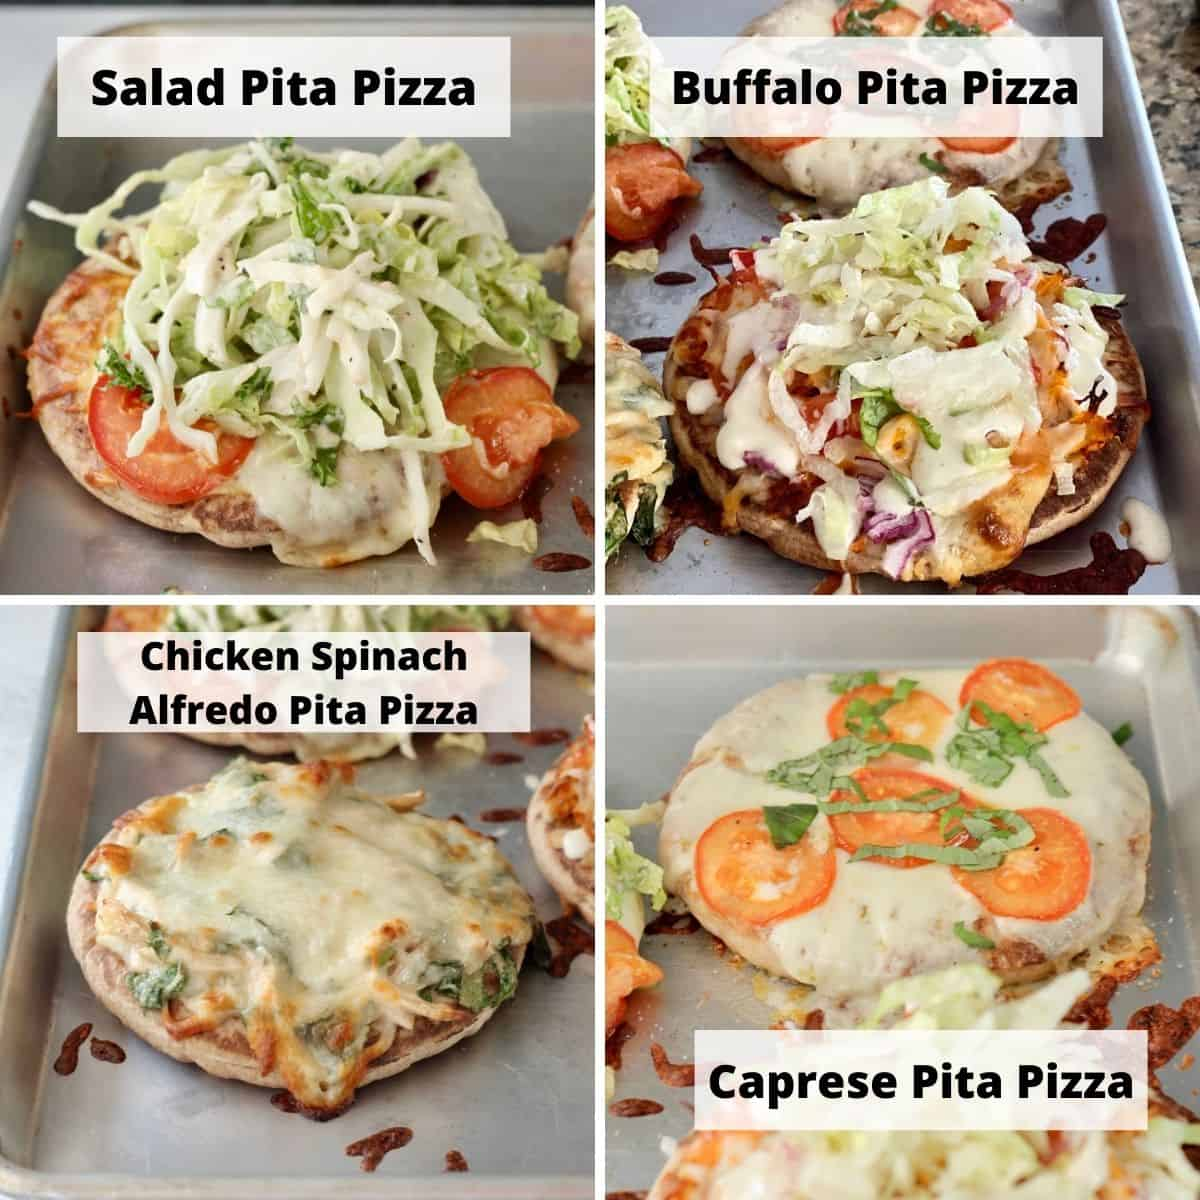 Other pita pizza variations to try. Picture collage of salad pita pizza, buffalo pita pizza, chicken spinach Alfredo pita pizza, and capers pita pizza.